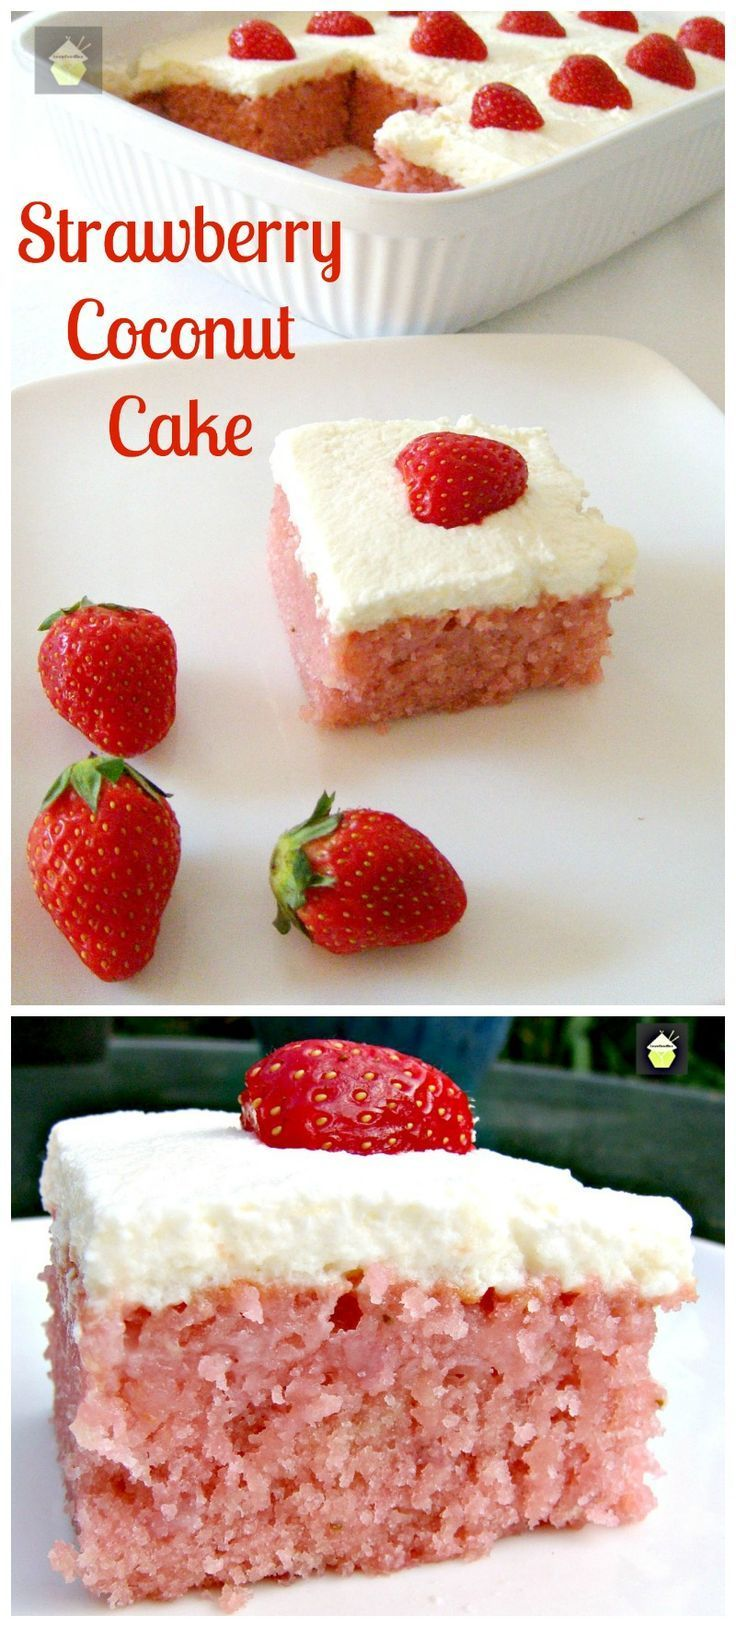 Moist Strawberry & Coconut Cake with Fresh Whipped Cream. Easy made from scratch recipe. Yummy!